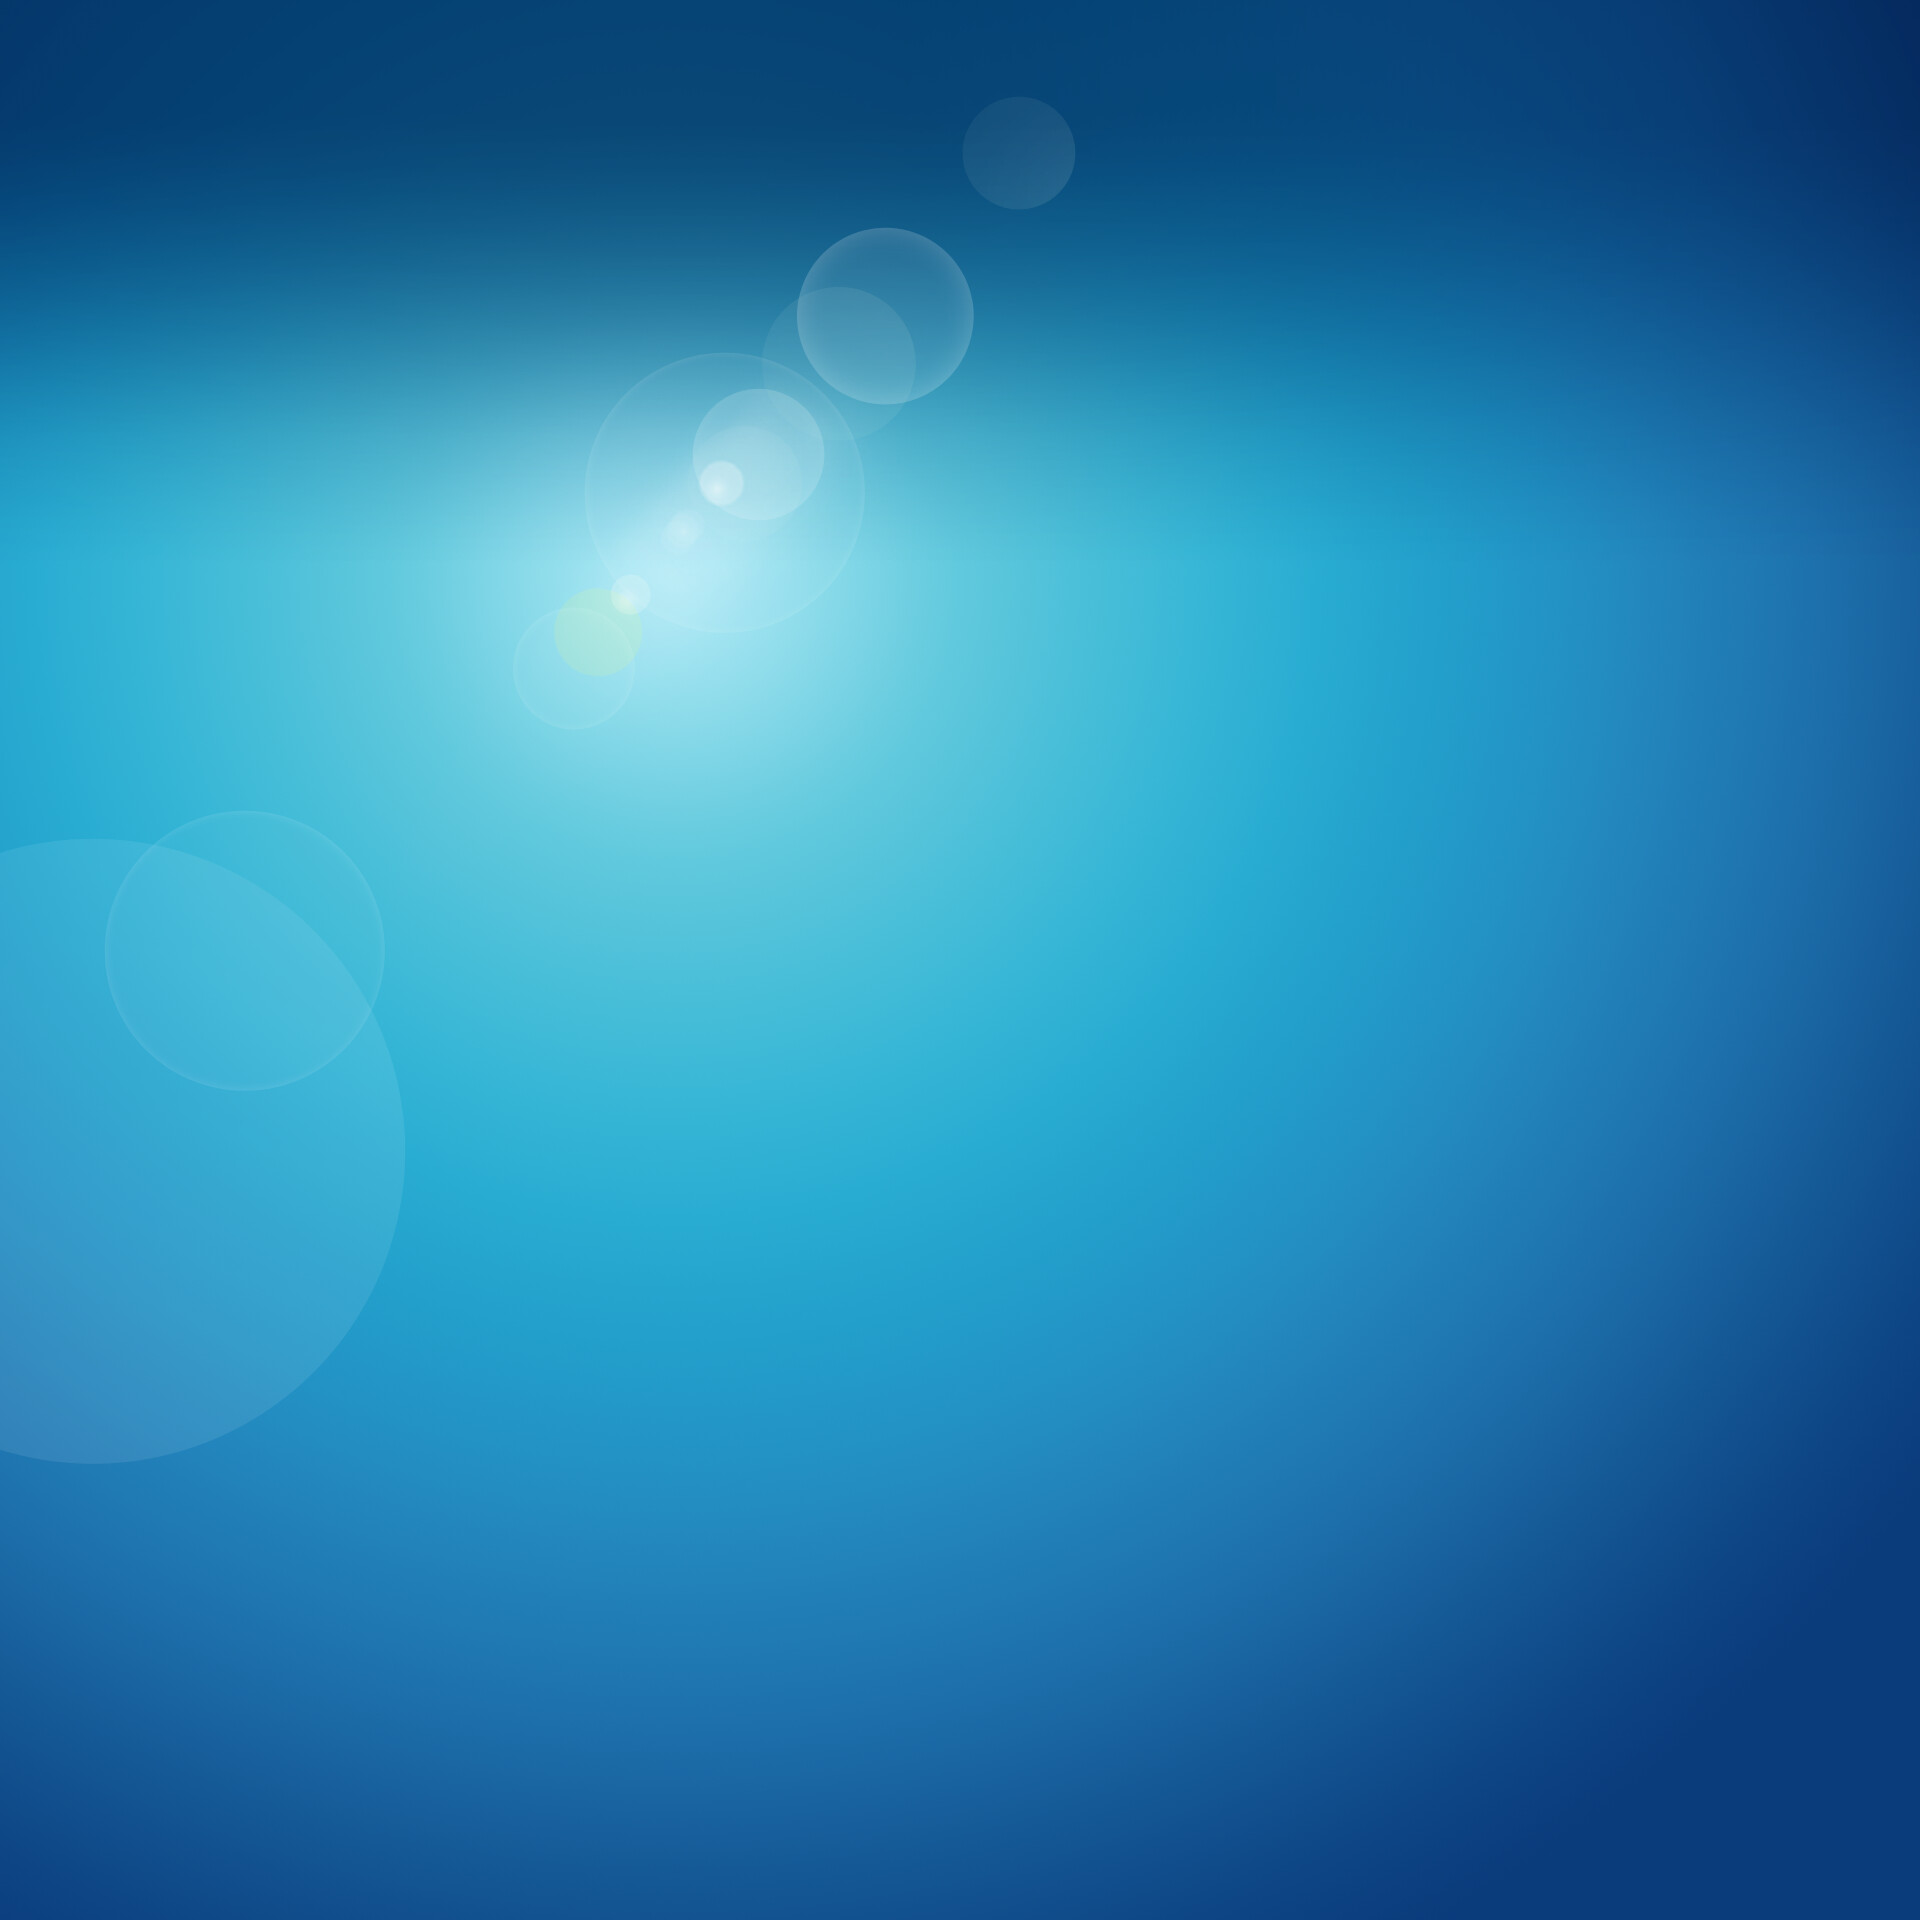 Samsung Galaxy S4 Full HD Wallpapers Extracted And